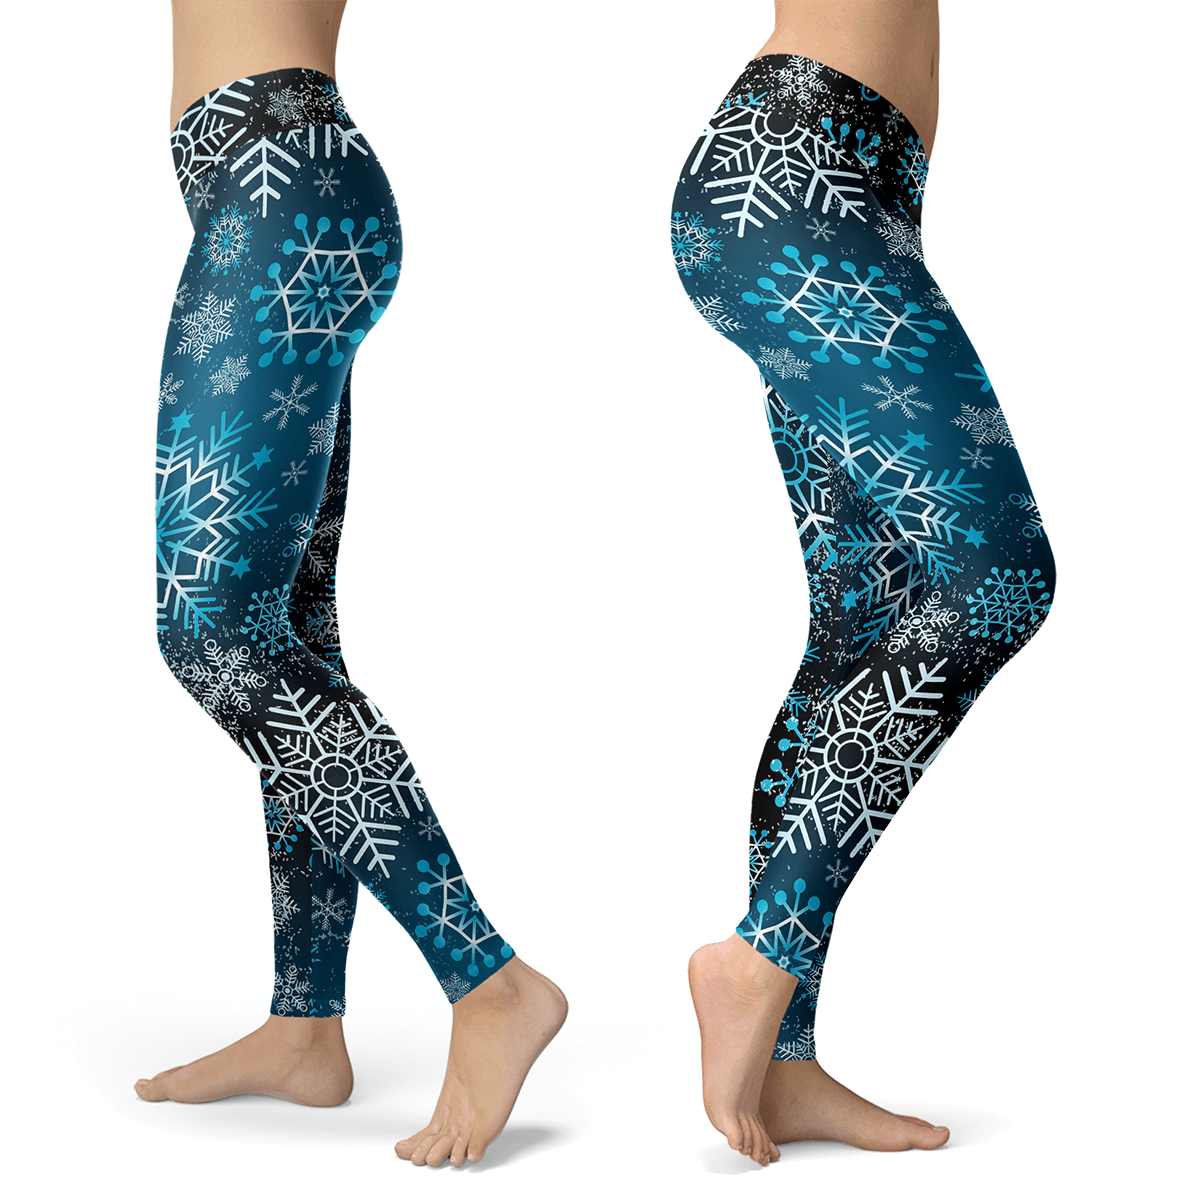 Blue Grunge Snow Leggings - Powderaddicts